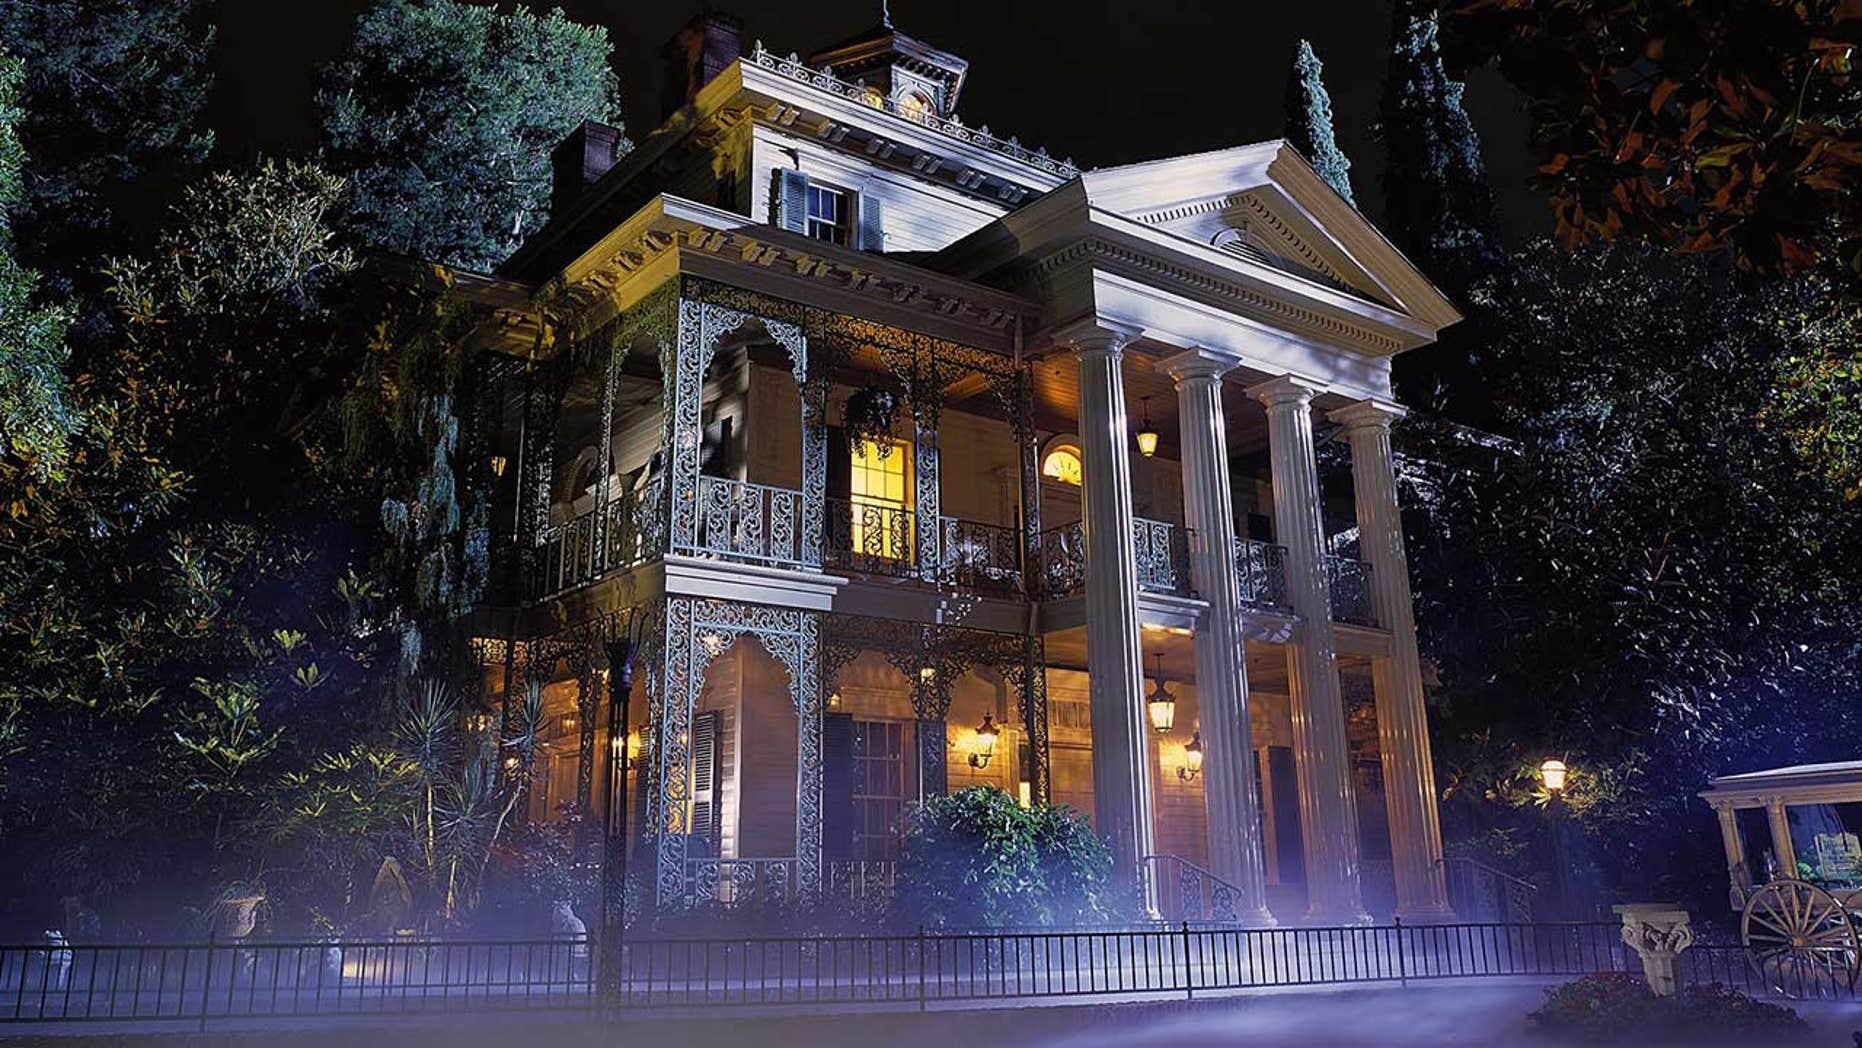 Disneyland debuts macabre menu item in honor of Haunted Mansion's 50th anniversary